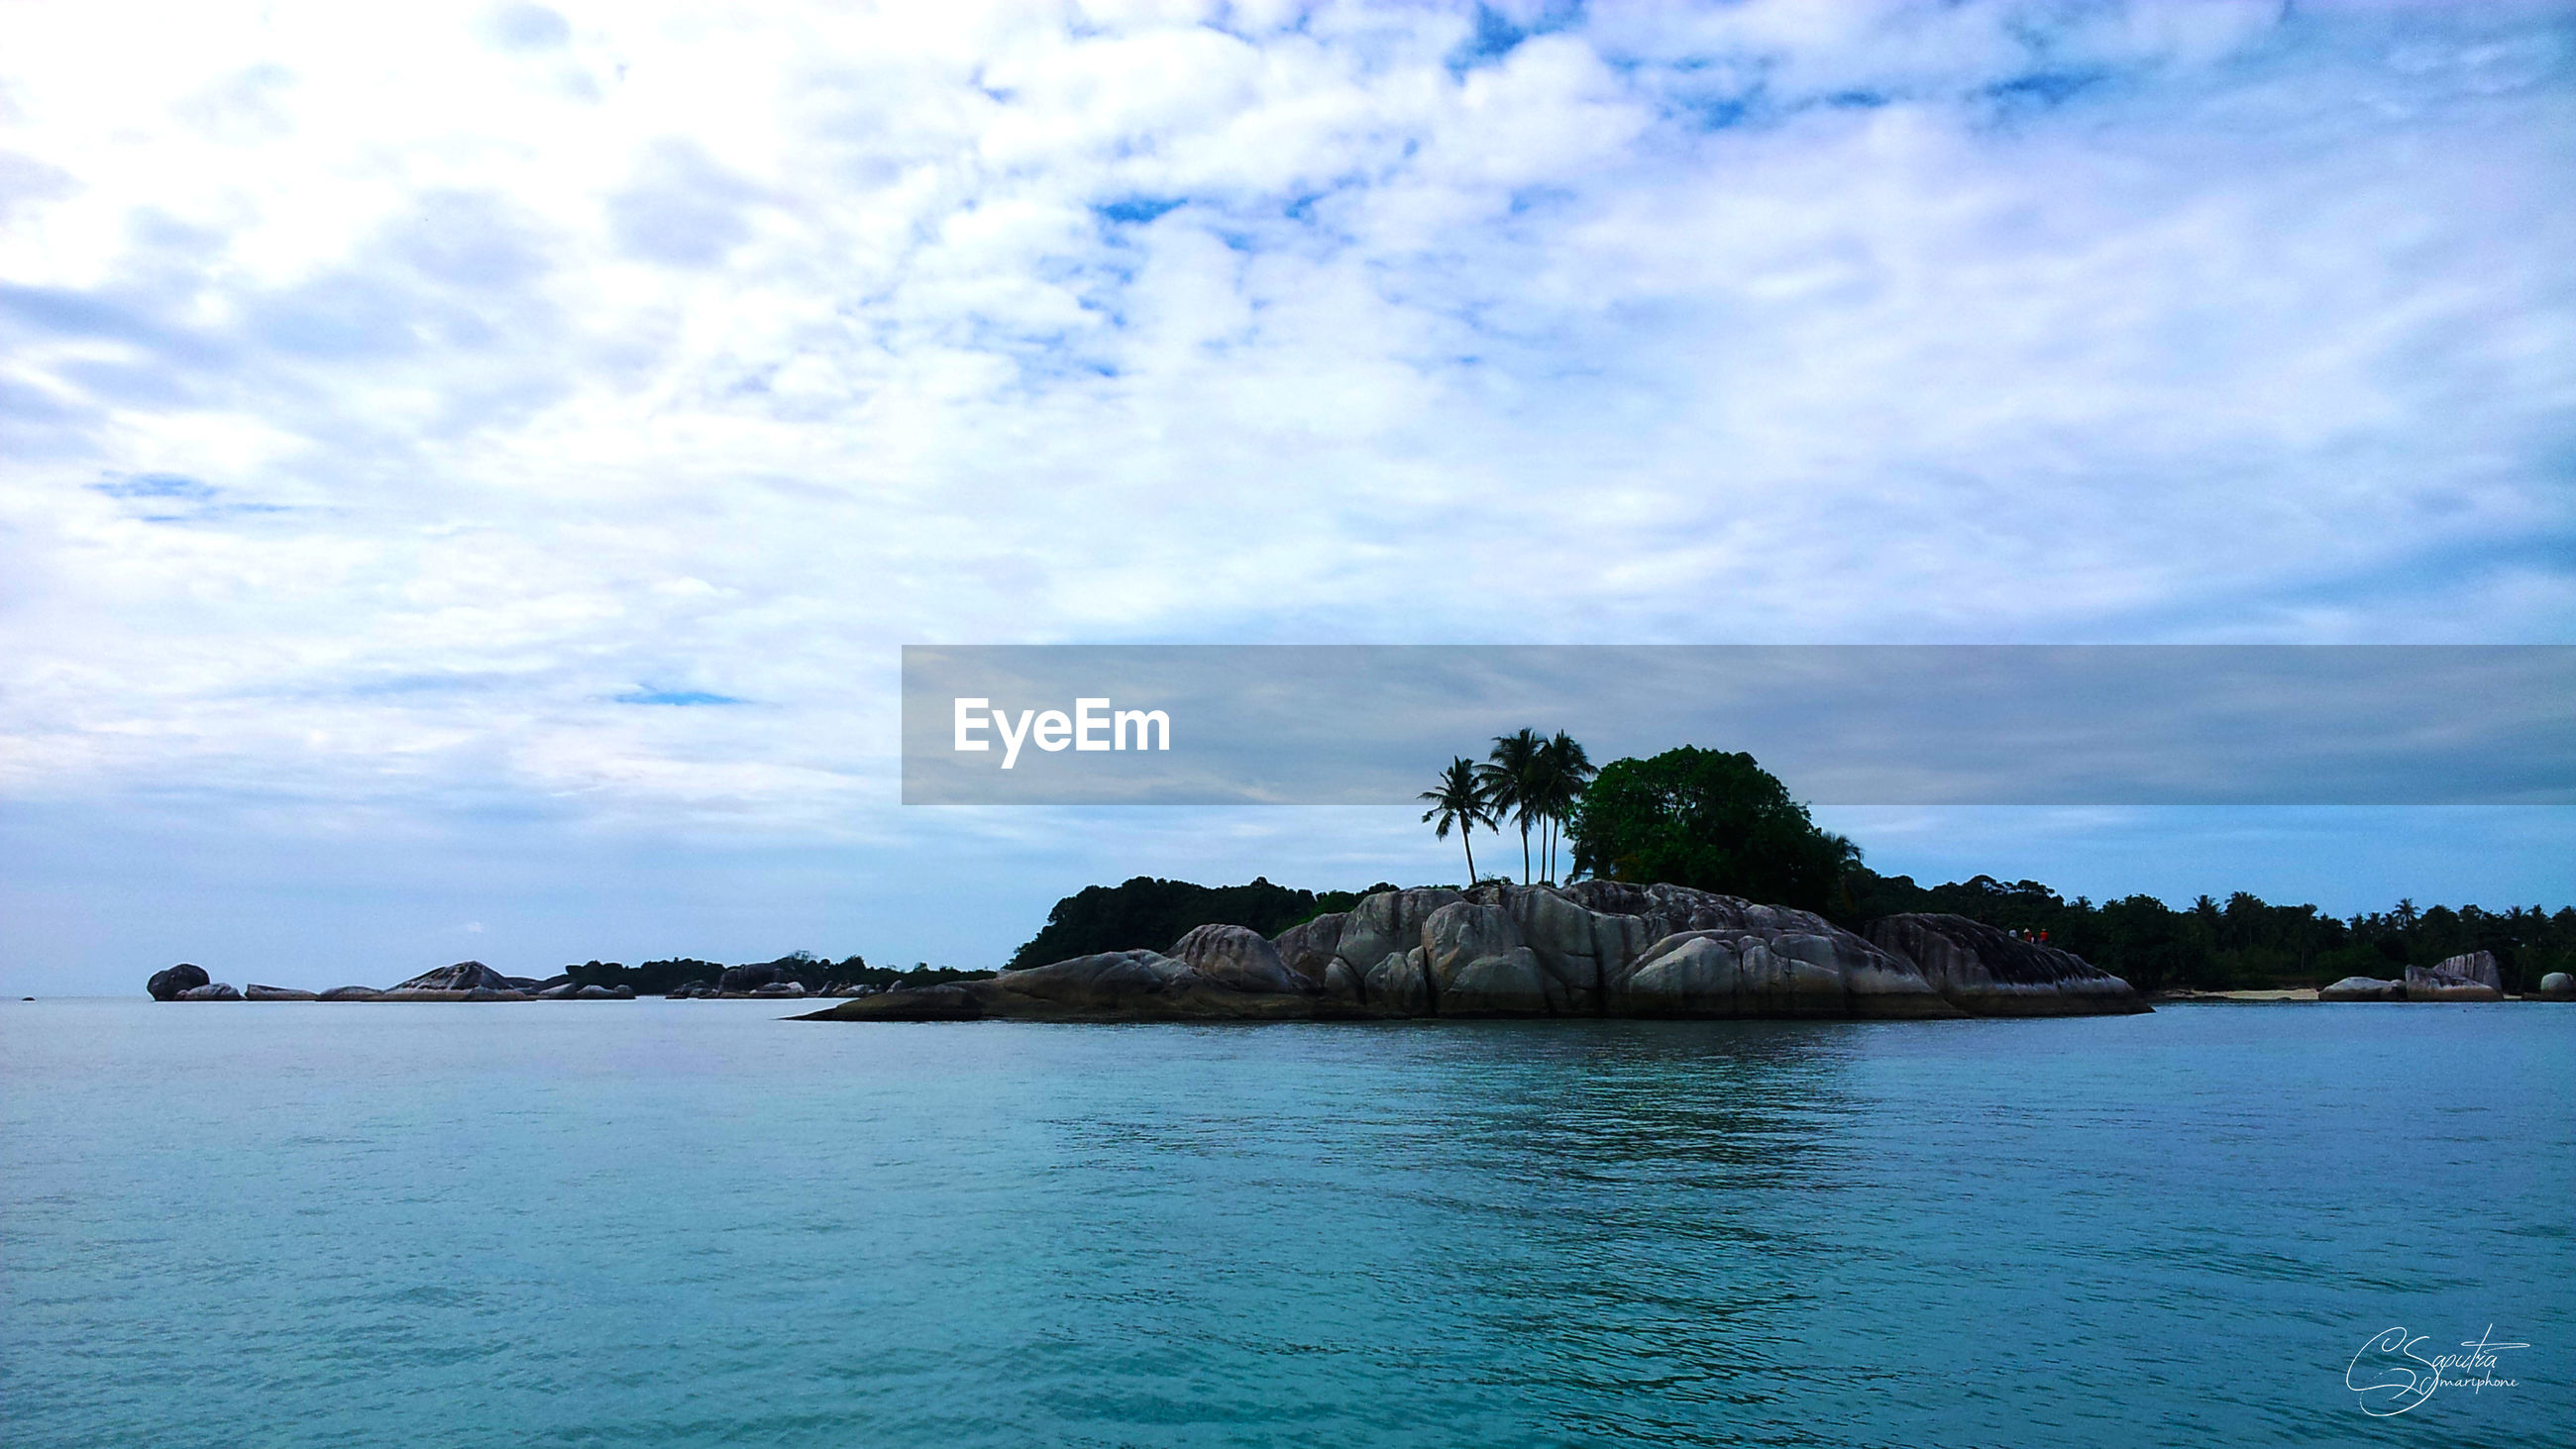 sea, tree, nature, sky, water, beach, tranquility, outdoors, scenics, no people, tranquil scene, cloud - sky, beauty in nature, palm tree, day